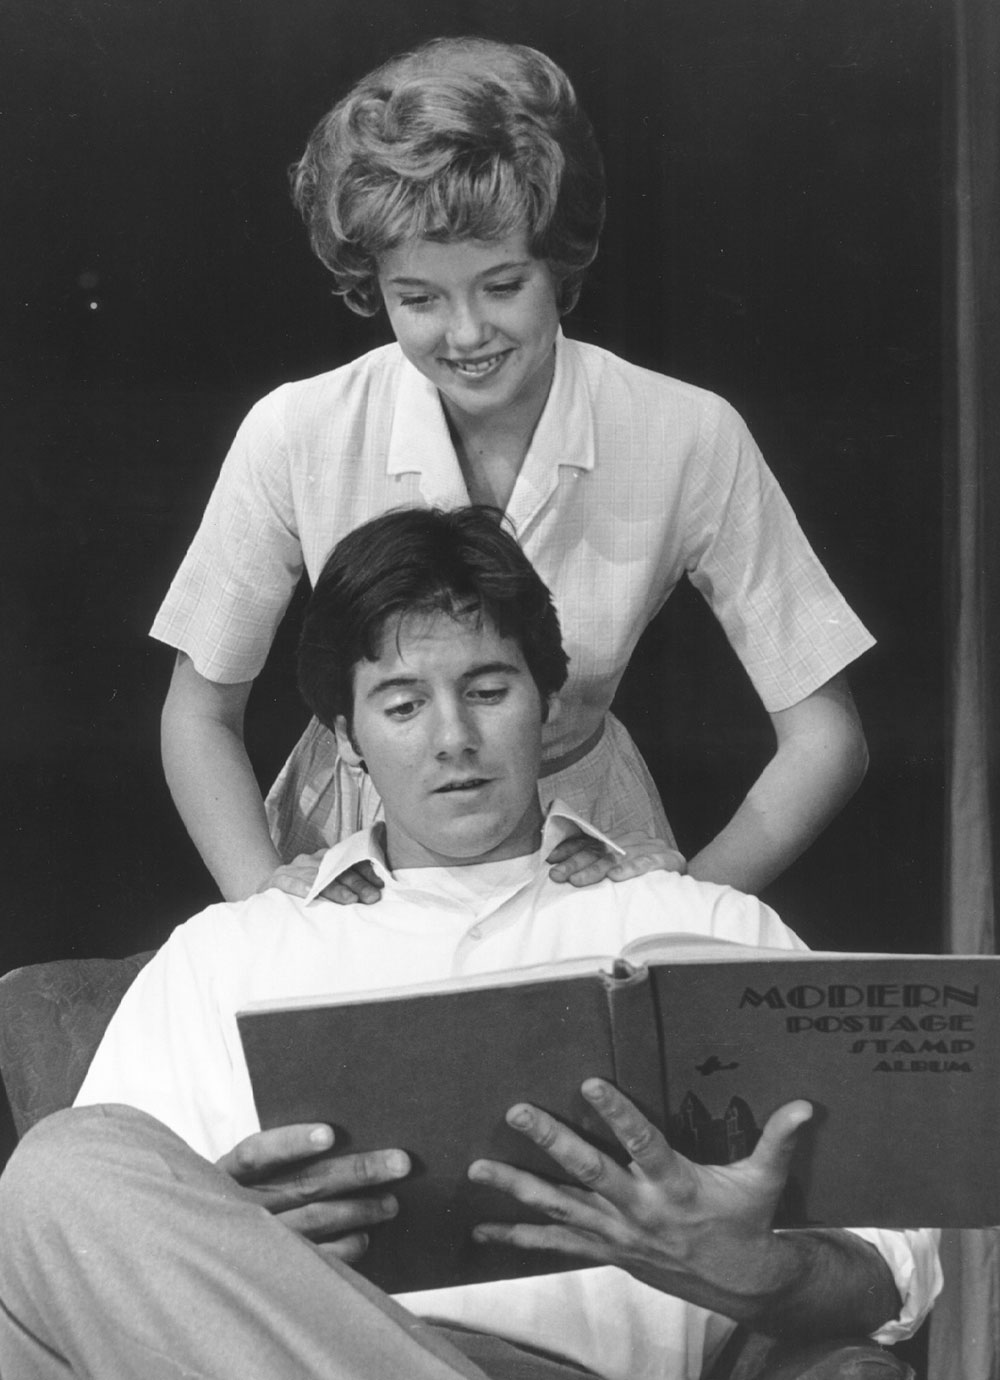 Annette bening in a play as a student at Mesa College